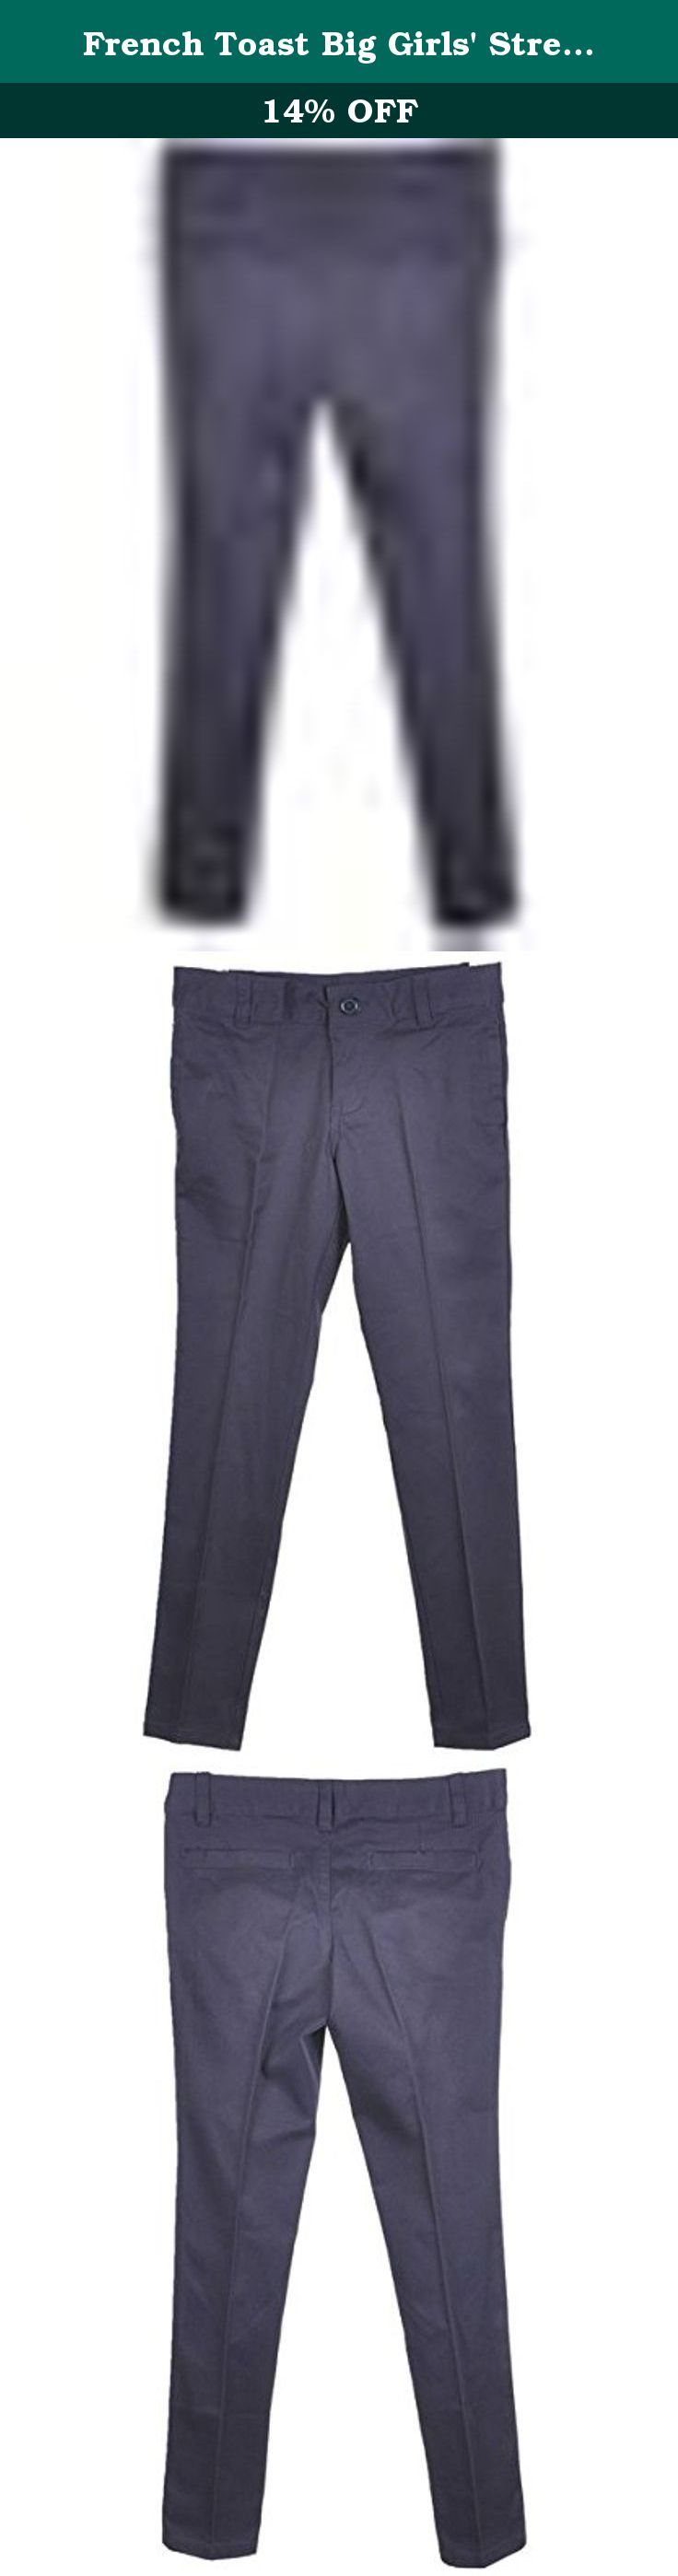 French Toast Big Girls' Stretch Twill Uniform Pants - navy, 7. Here's the skinny...Its' back and better than ever in a comfortable mix blend of cotton and spandex. modified skinny leg-not too tight but fashionably right for today's girl on the go.